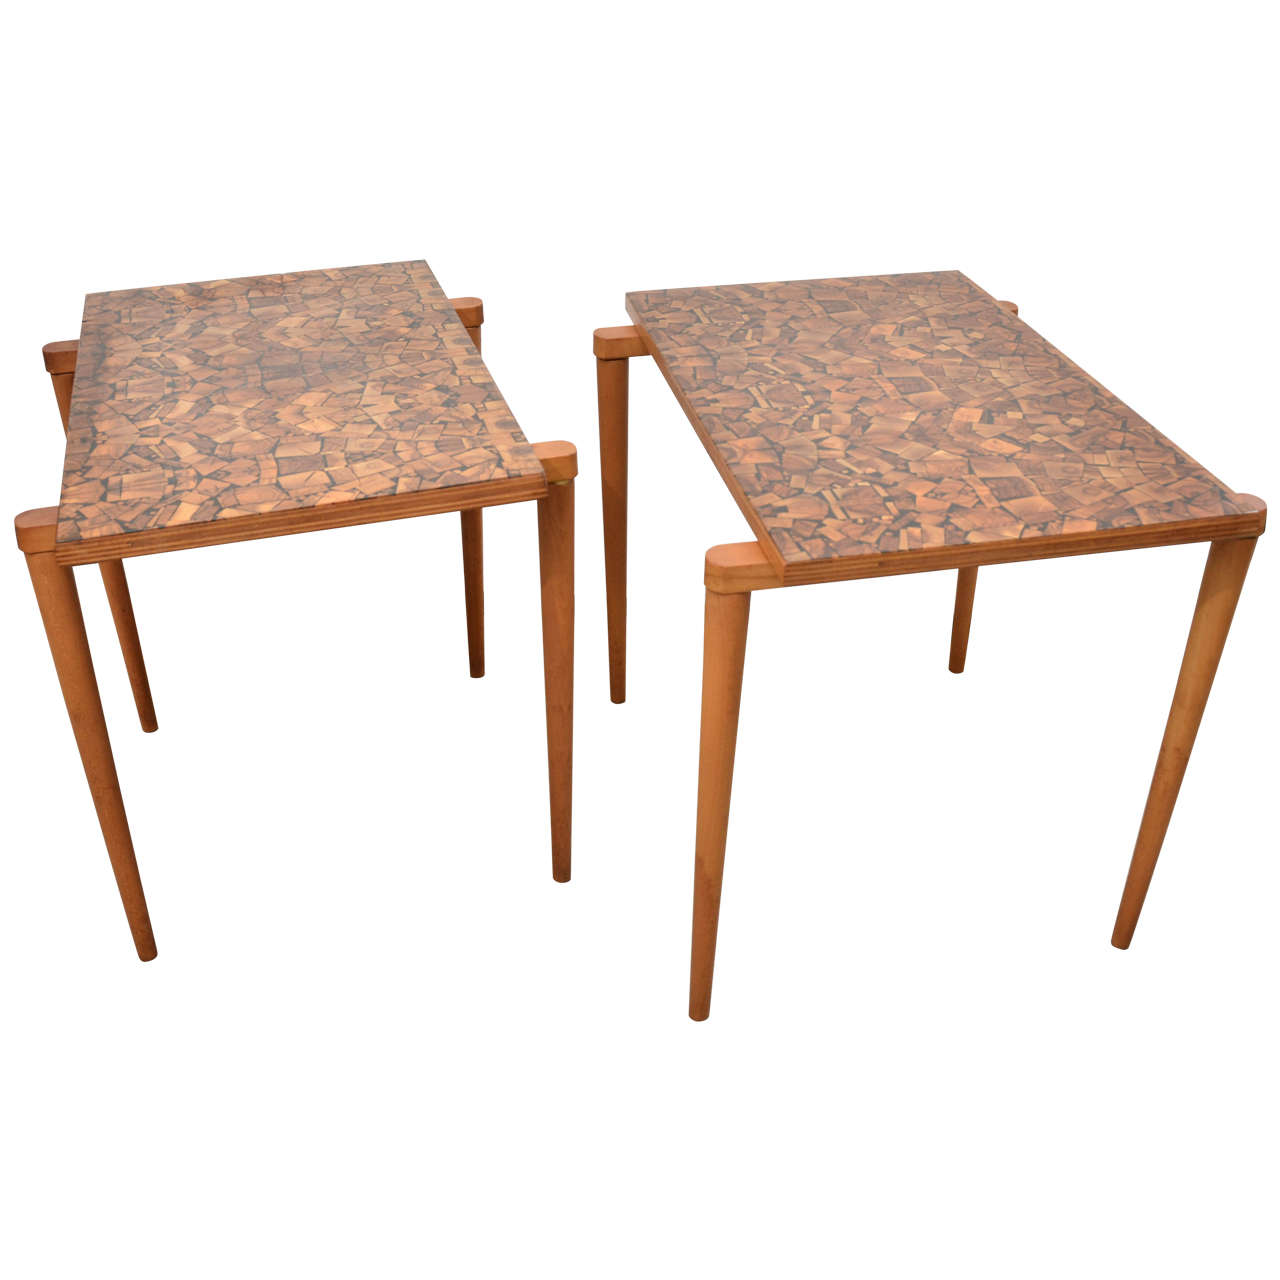 Unique Side Tables For Sale At 1stdibs